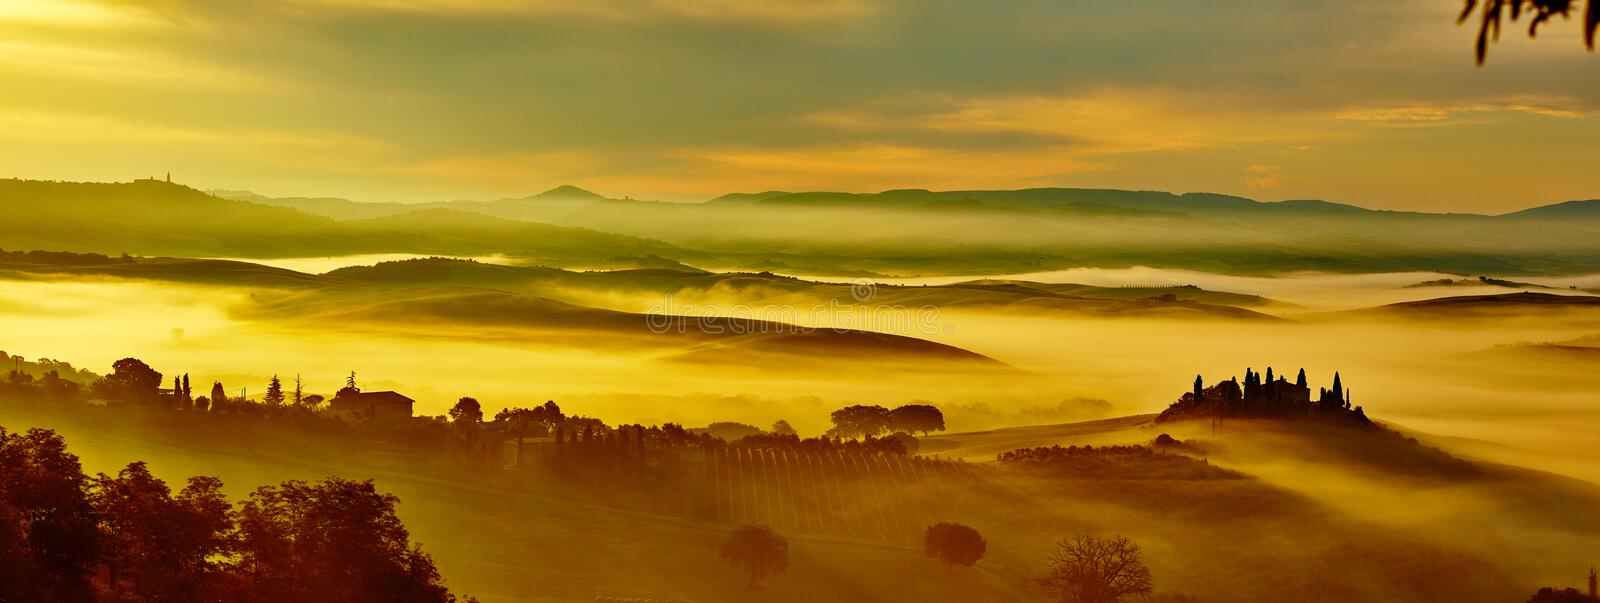 Scenic Tuscany landscape with rolling hills royalty free stock photo